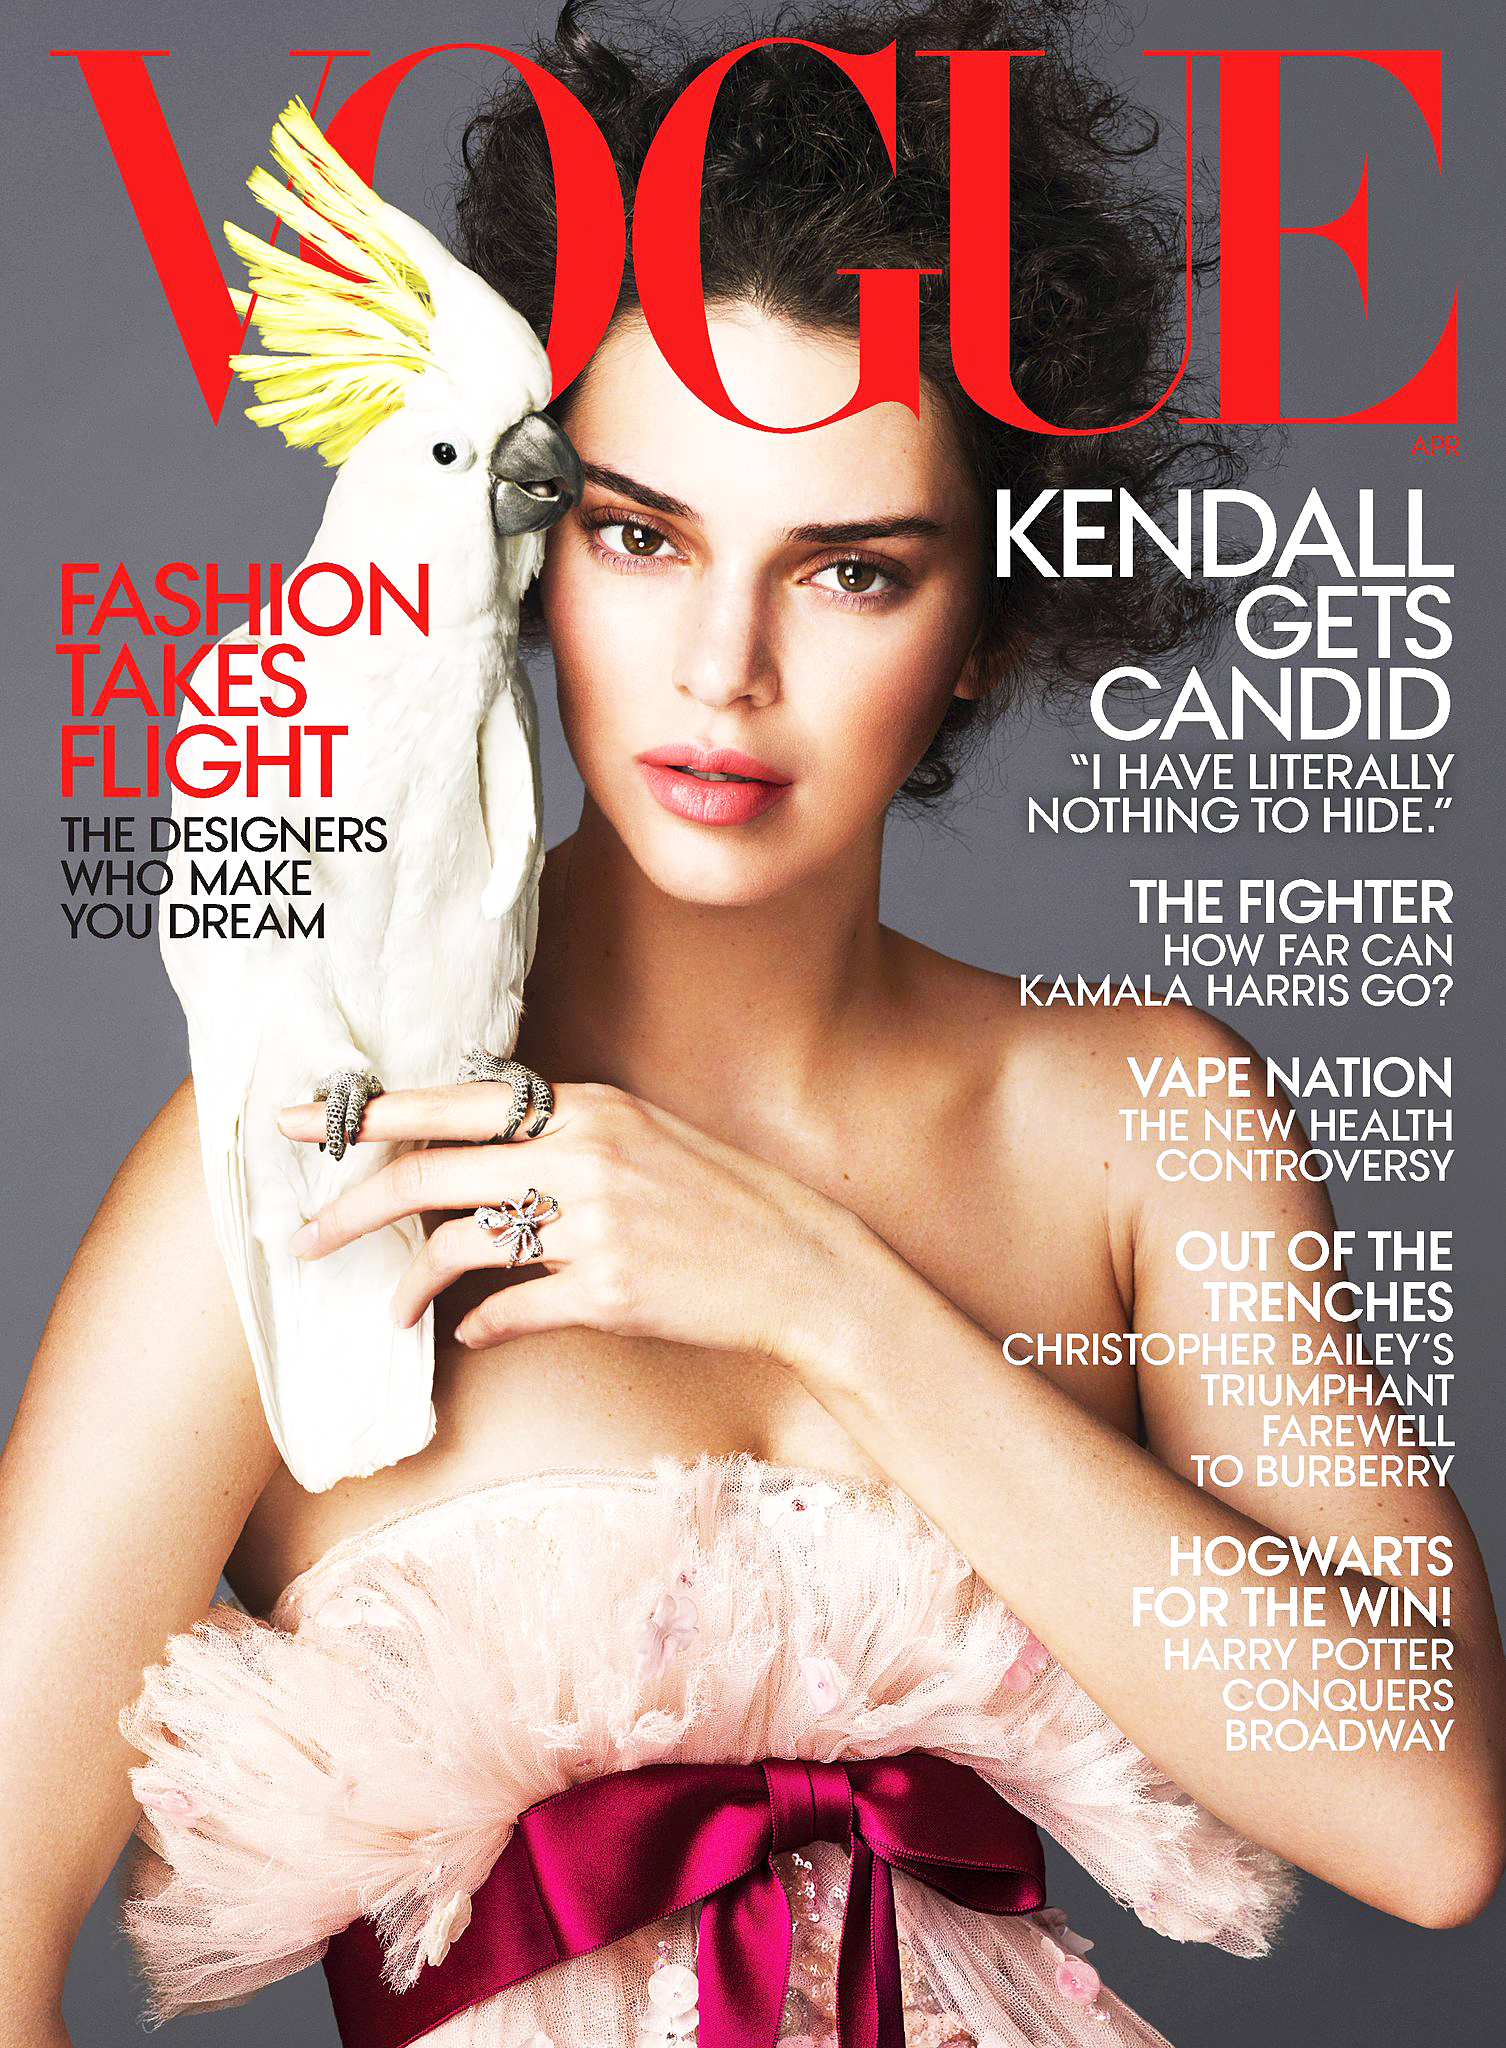 Kendall Jenner VOGUE cover